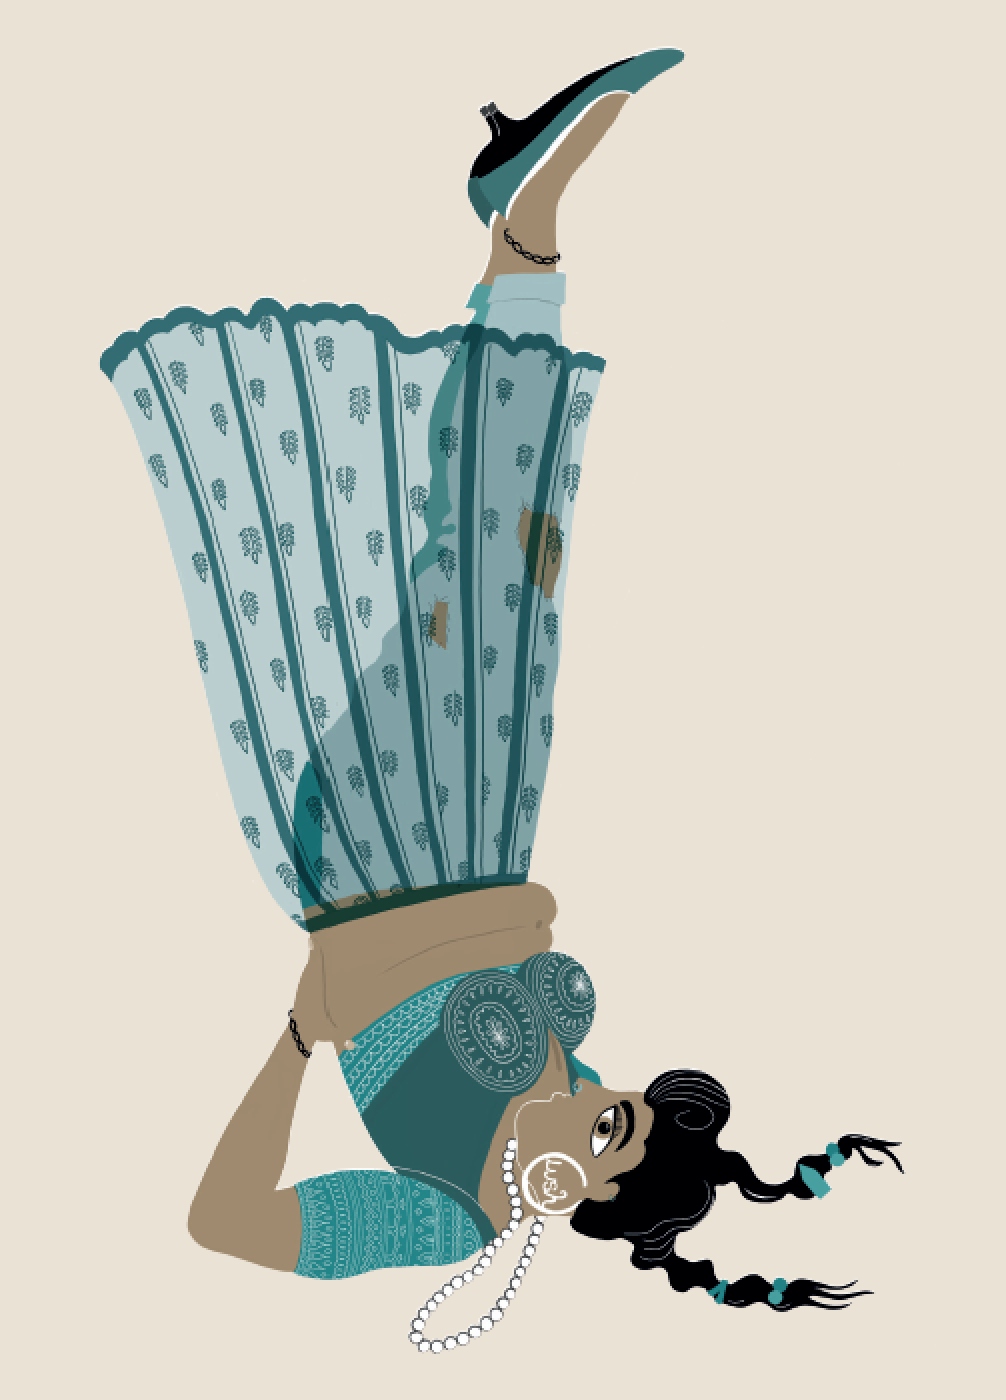 2019. Sarvāṅgāsana (Shoulder Stand) Digital print on paper 5 in. x 7 in.  Practiced wearing a ghagra with booti work worn over old jeans, a tight choli with running-stitch embroidery, kitten heels, and Femmeboyant design earrings.   Purchase